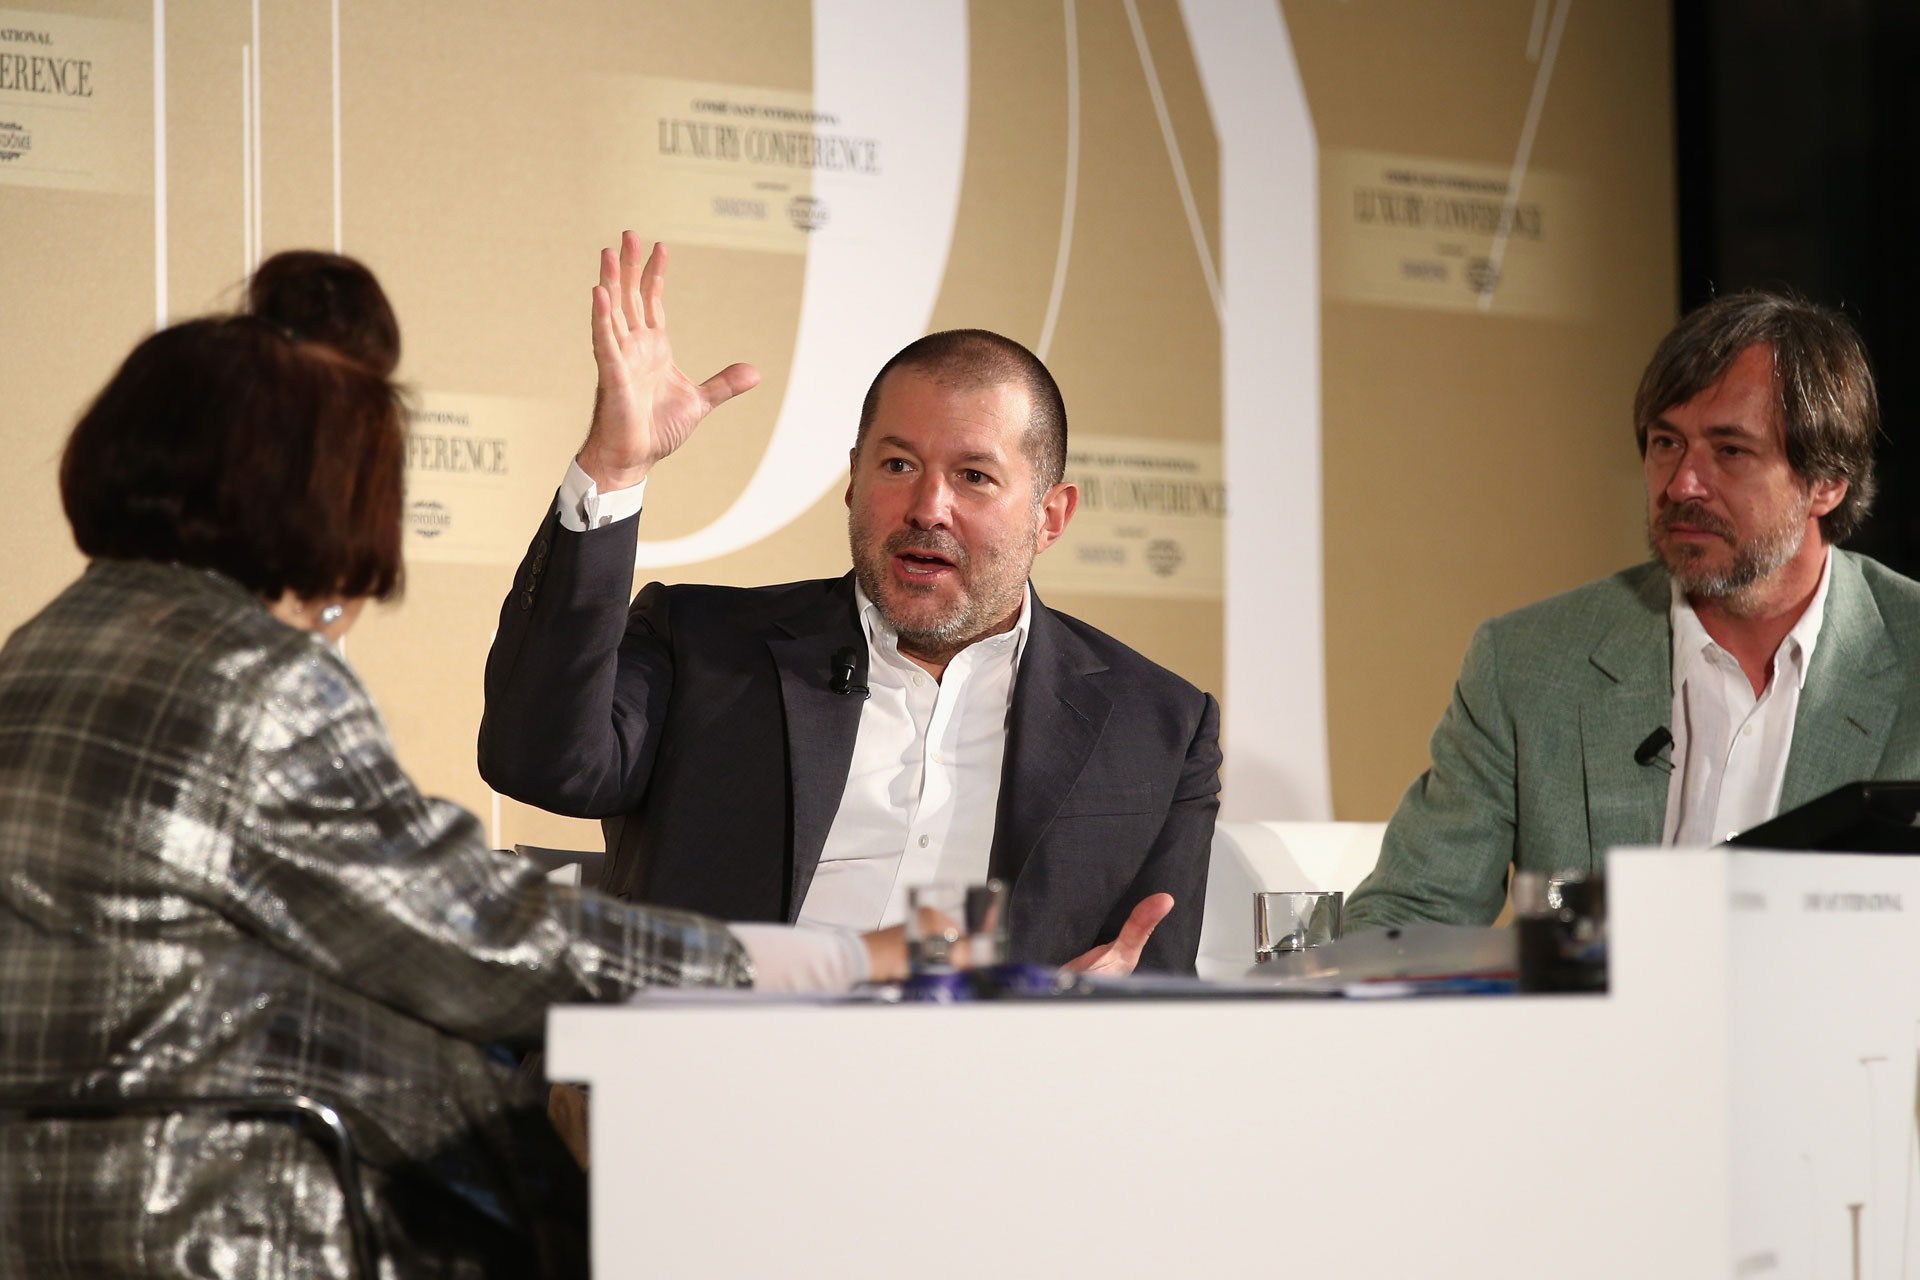 Jony Ive 2015 Conde Nast International Luxury Conference Vogue image 001